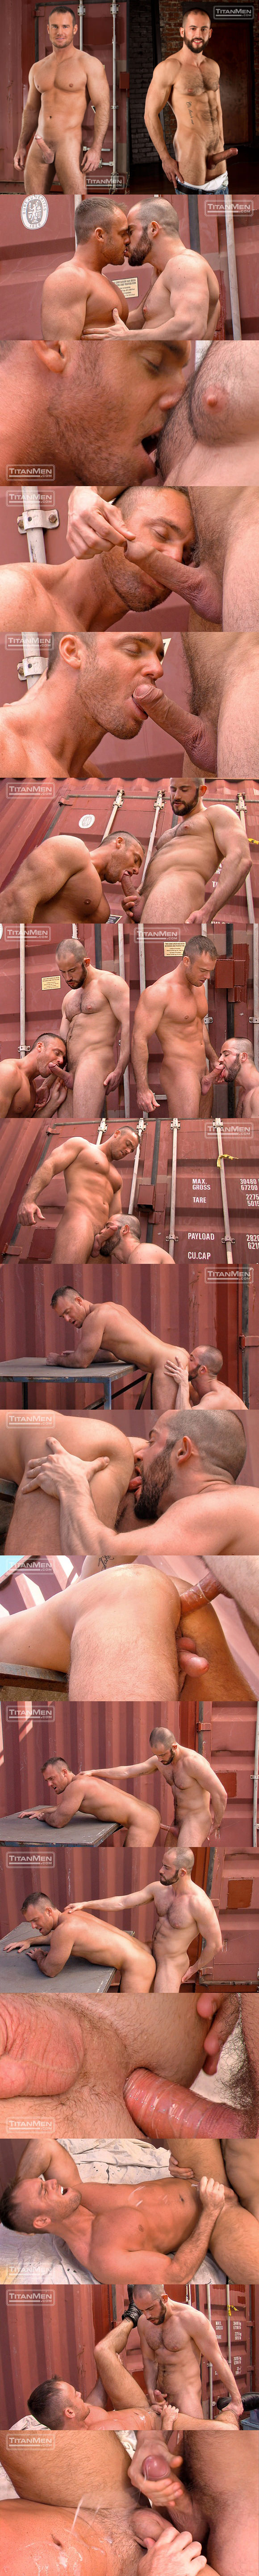 titanmen-diversion-kevin-lee-felix-barca